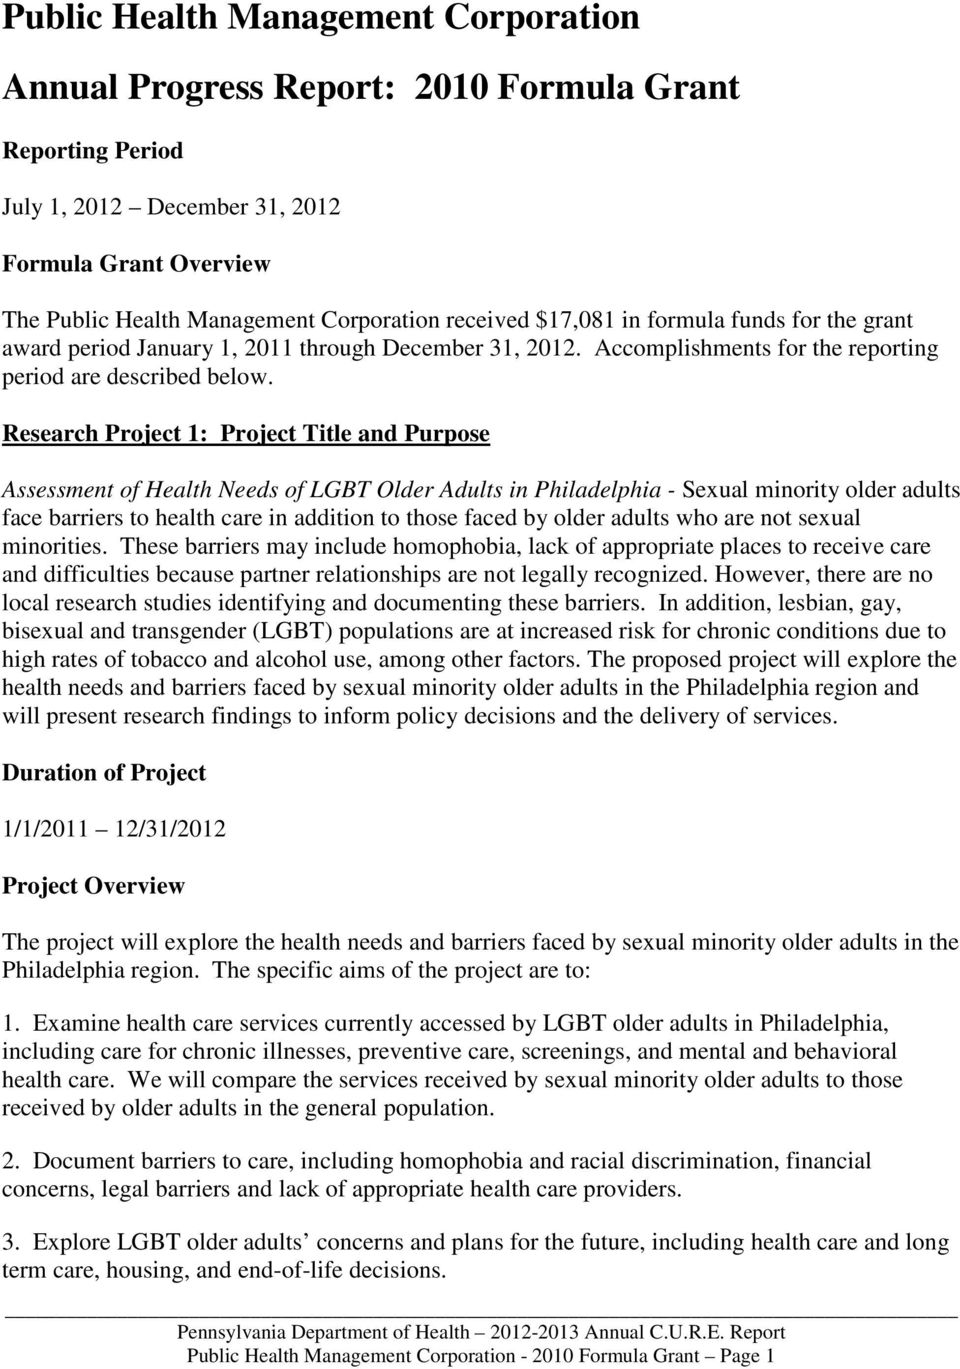 Research Project 1: Project Title and Purpose Assessment of Health Needs of LGBT Older Adults in Philadelphia - Sexual minority older adults face barriers to health care in addition to those faced by